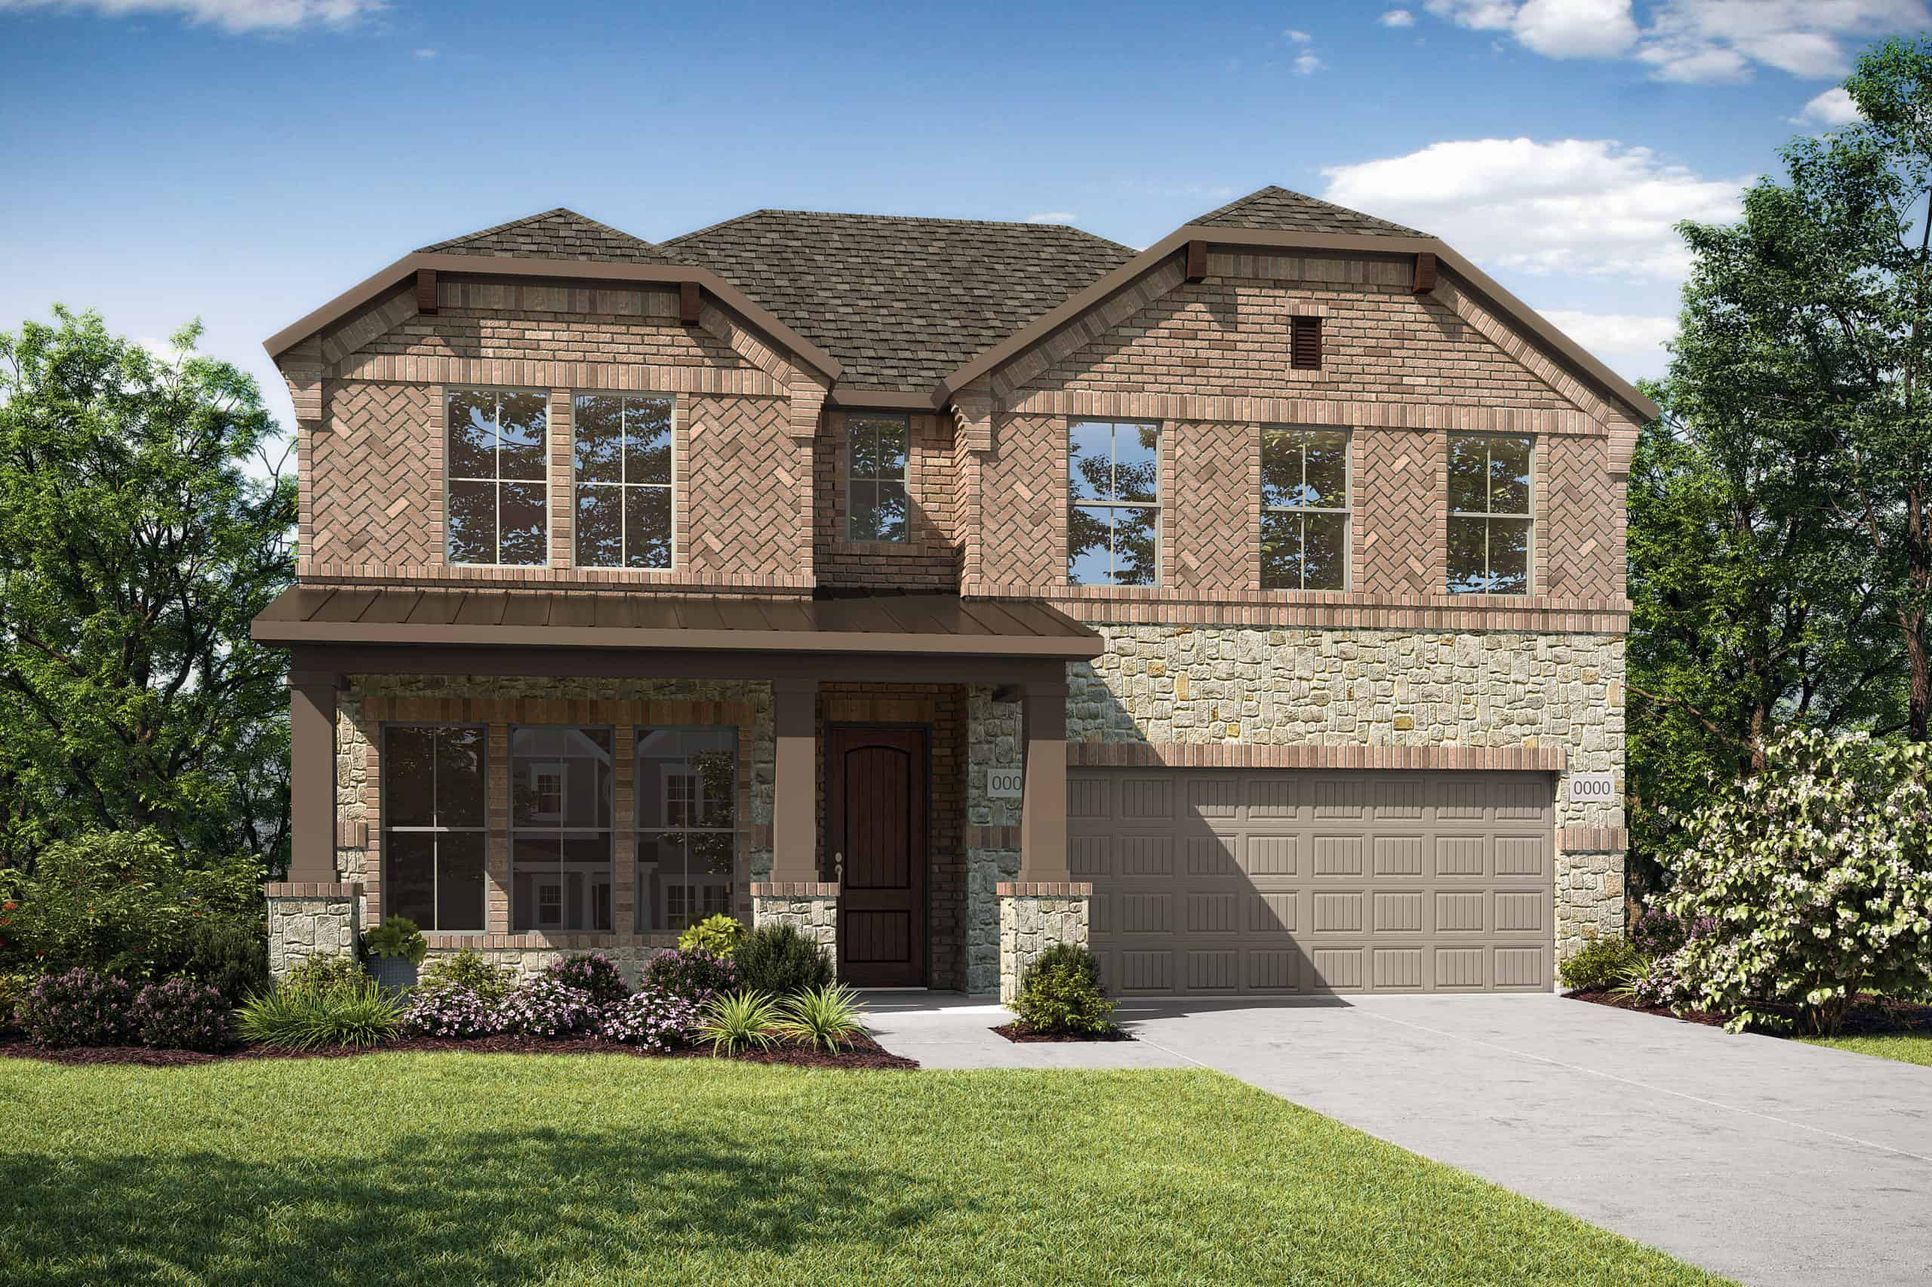 Elevation F:Elevation F is a two story stone and brick home design with a large front porch and herringbone bric